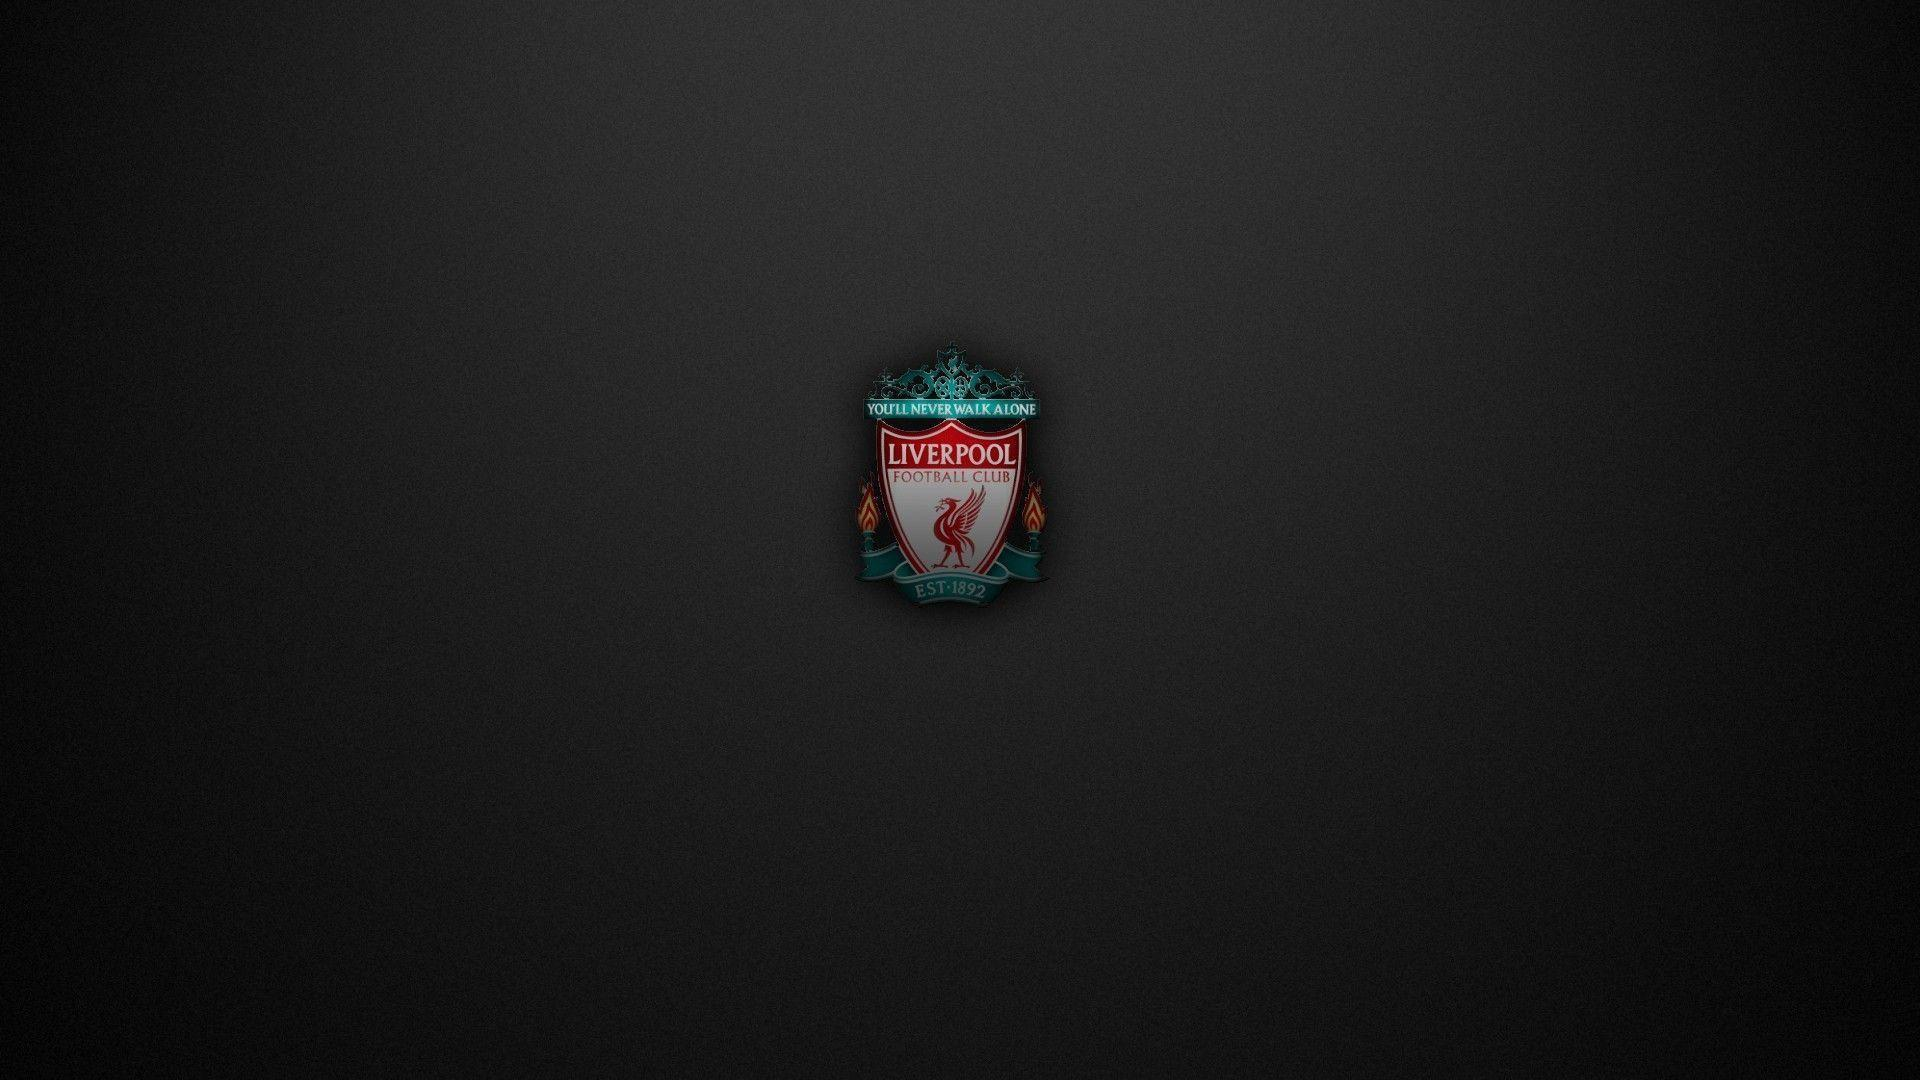 Liverpool FC Wallpapers HD / Desktop and Mobile Backgrounds